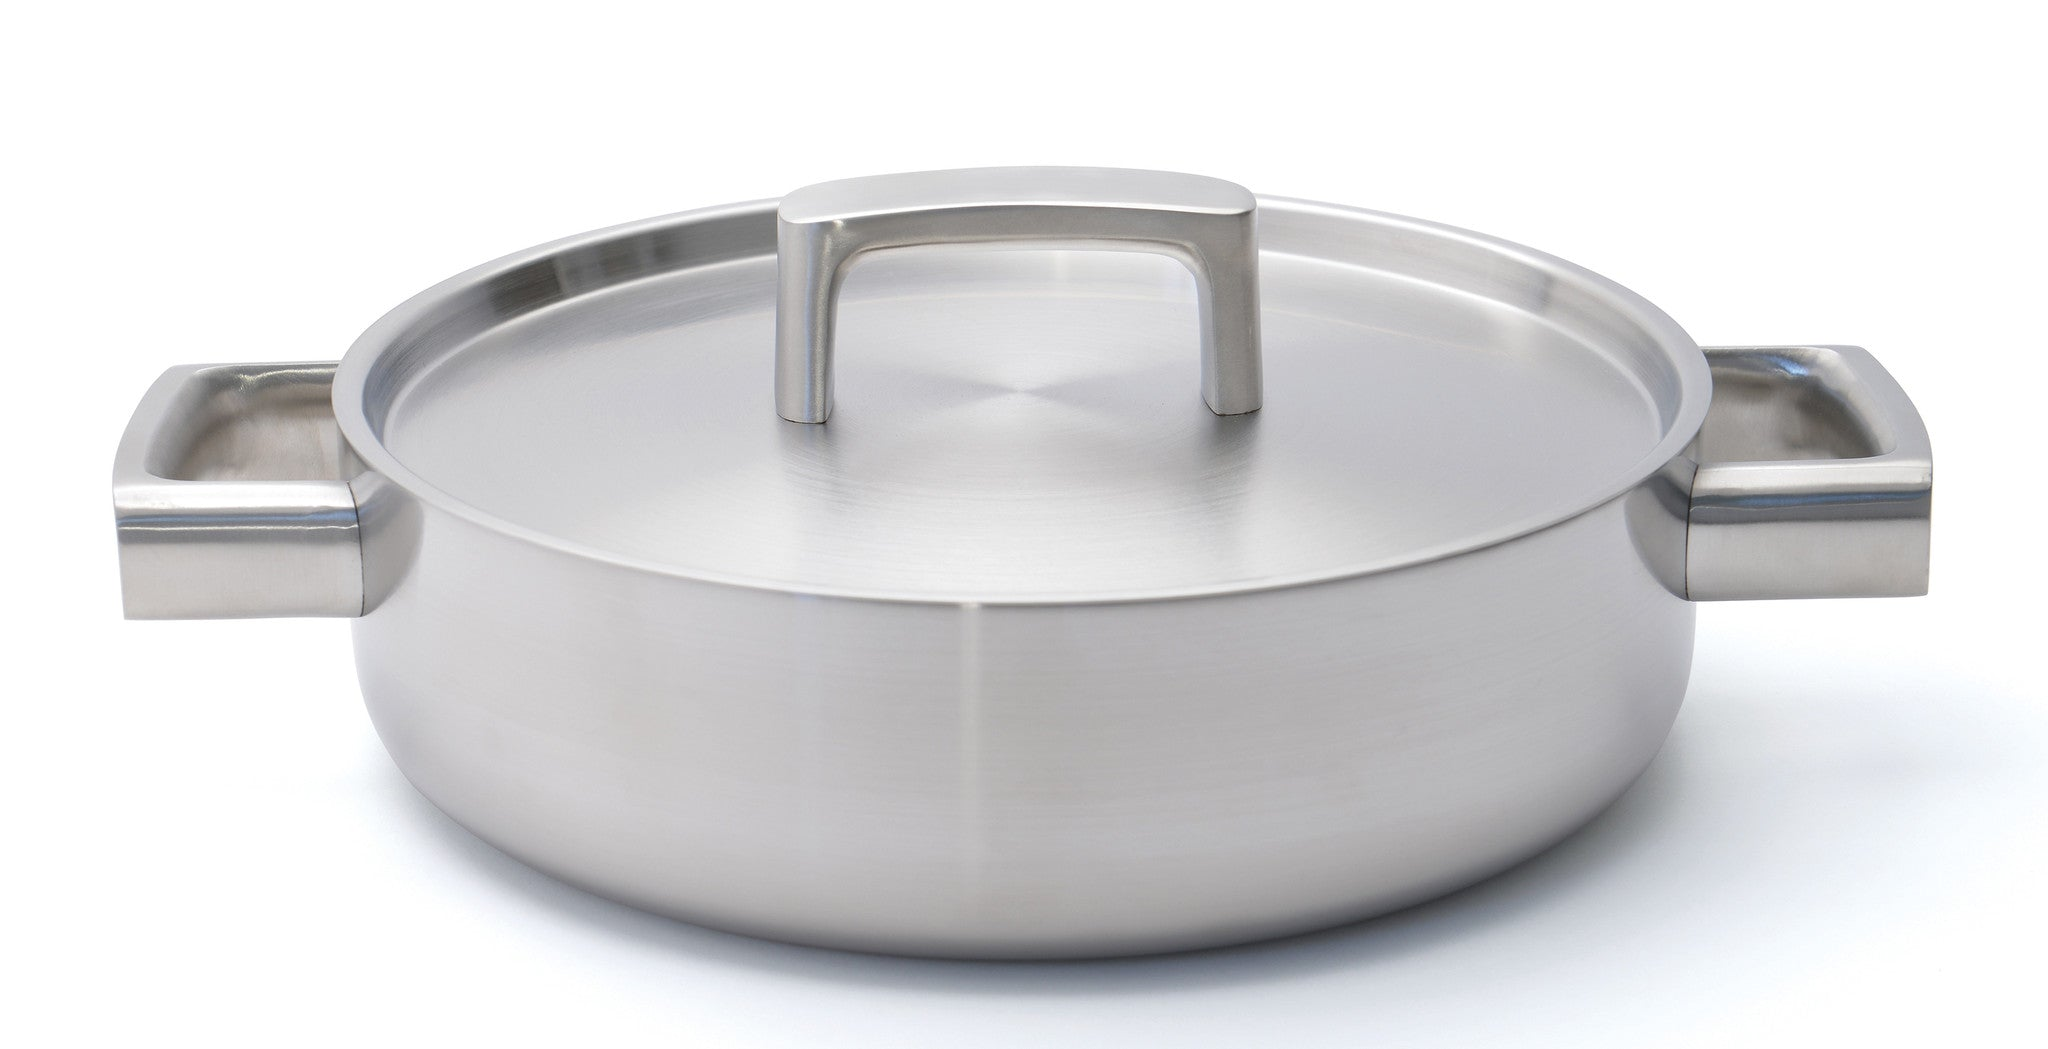 Ron 5-ply 24cm Stainless Steel Sauteuse with Lid